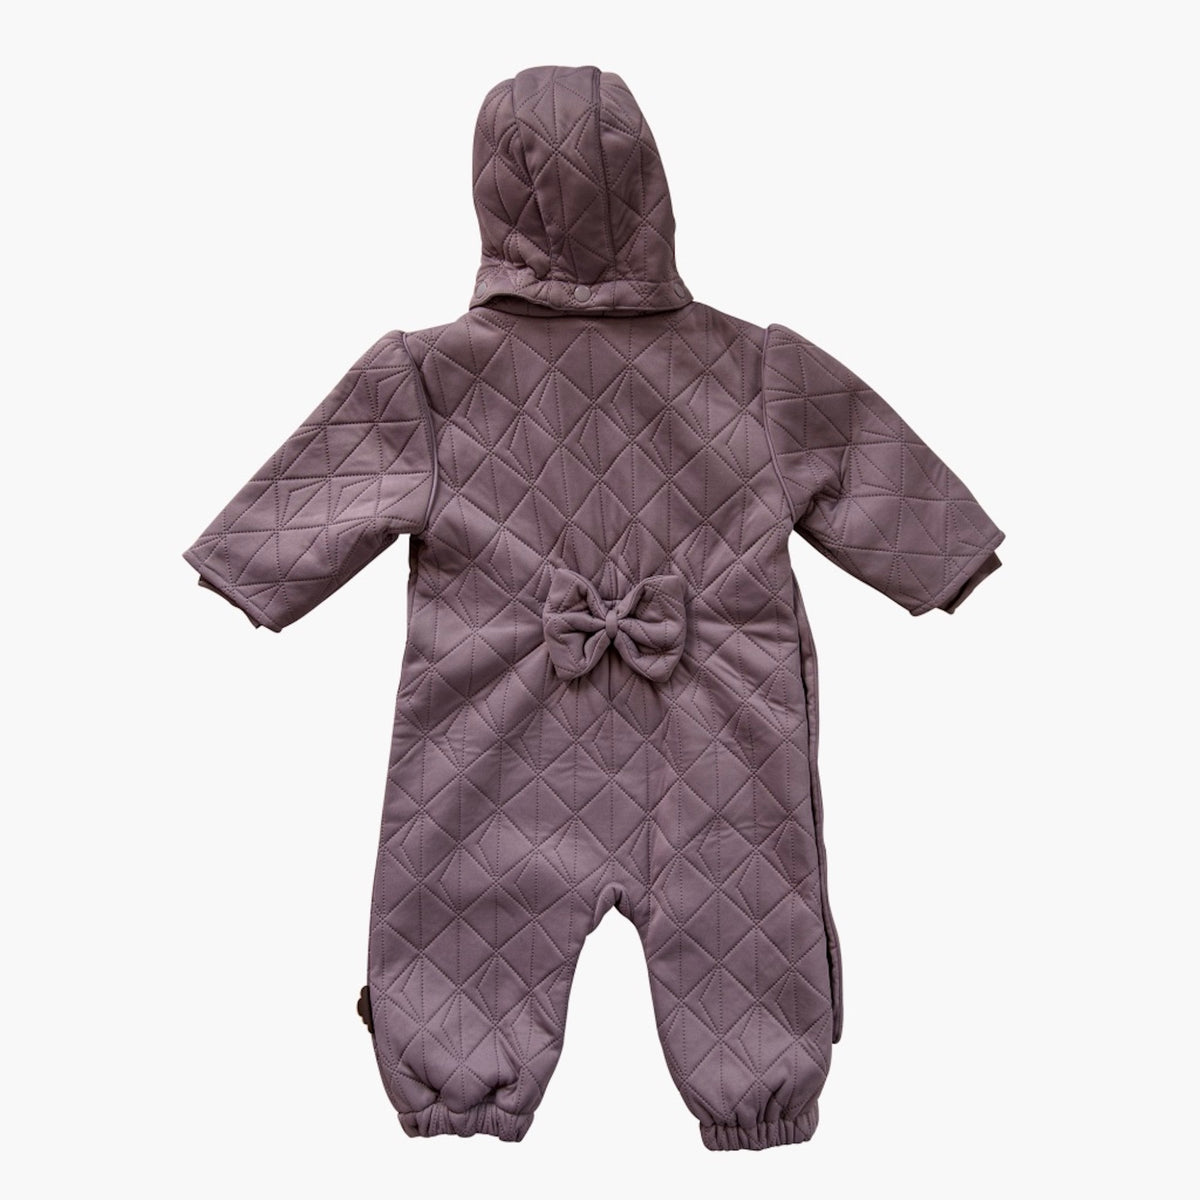 highest quality thermal suit for babies and toddlers outerwear coat snowsuit baby